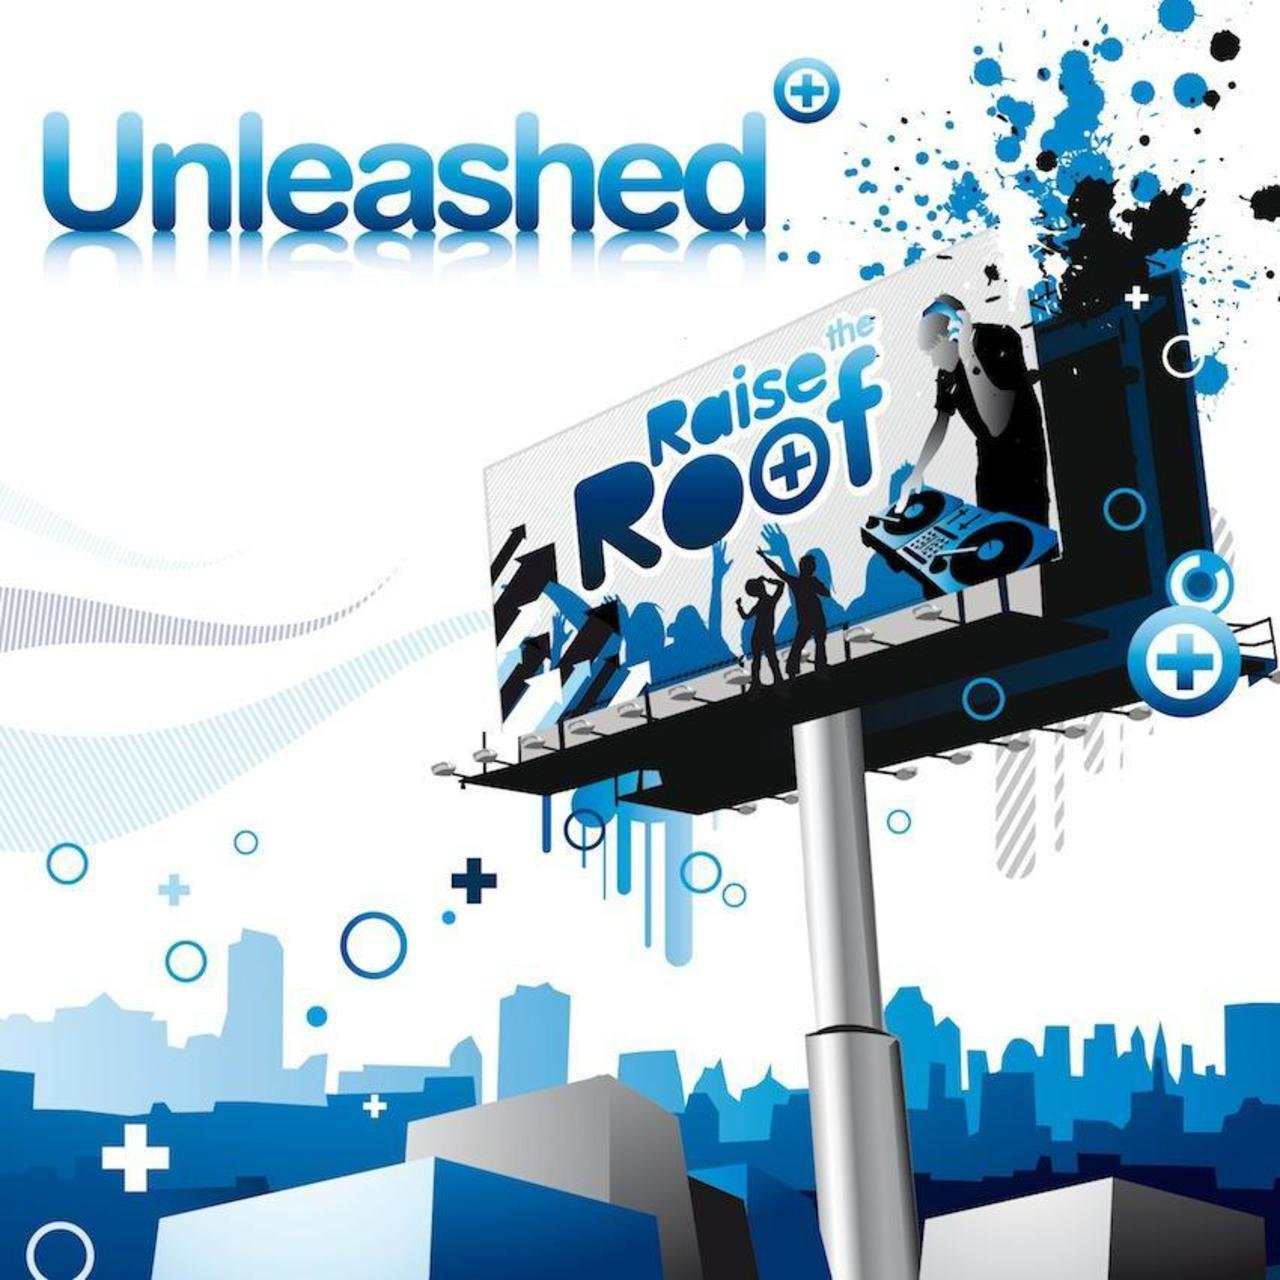 Unleashed: Raise the Roof